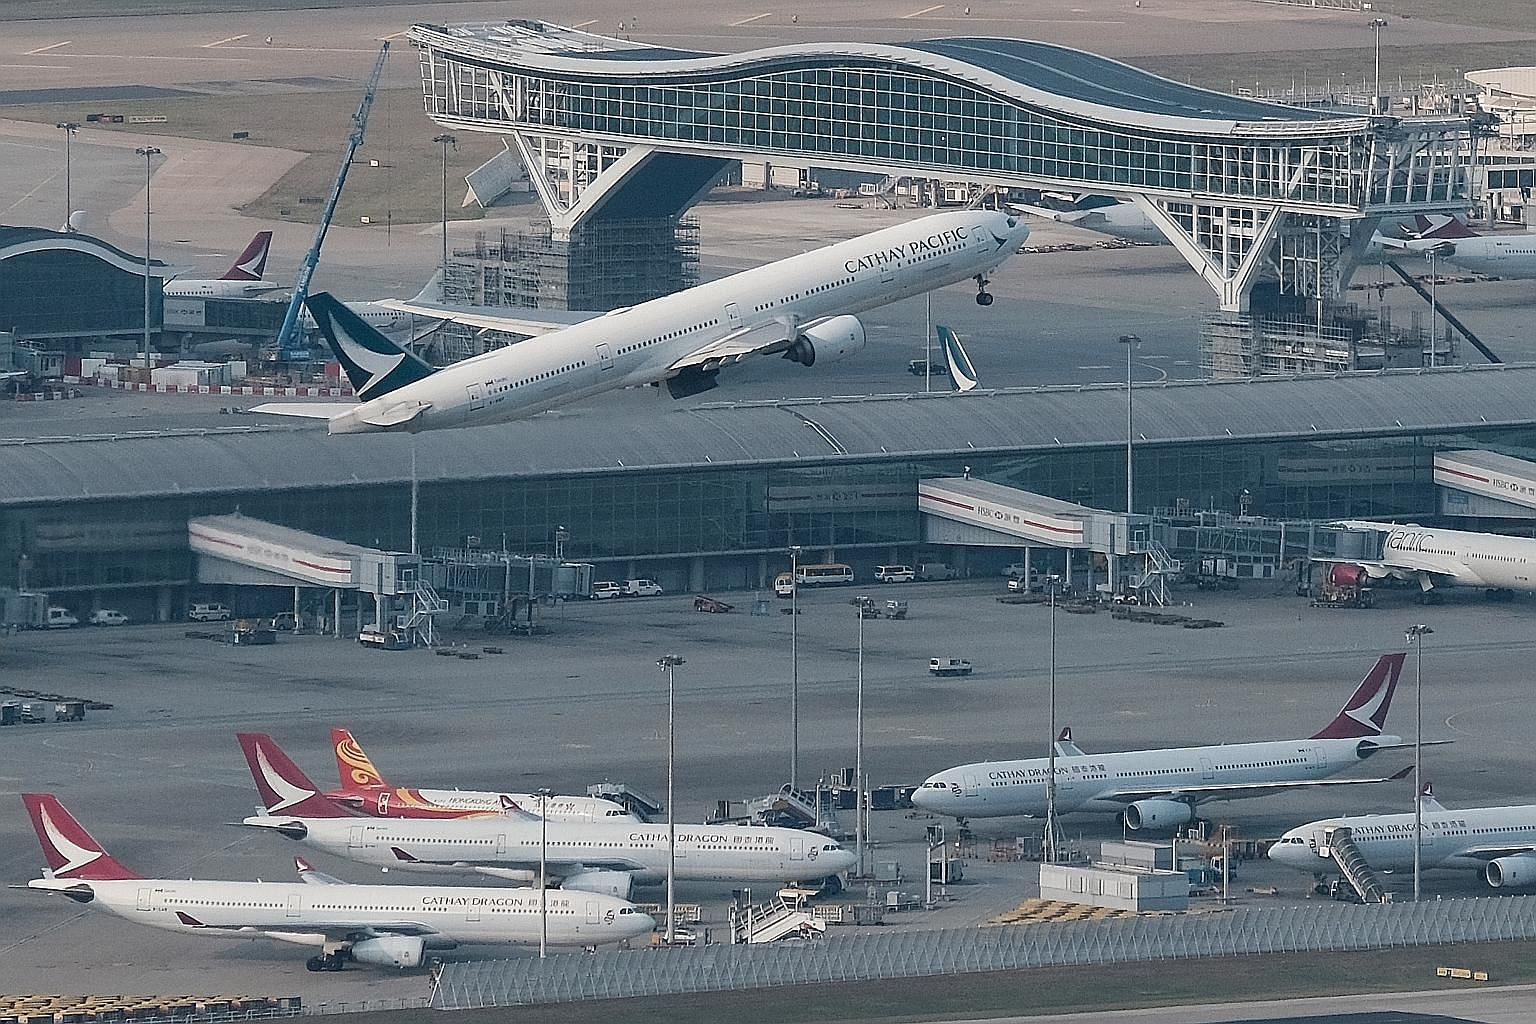 Cathay Pacific will maintain a skeleton long-haul network with two weekly passenger flights from Hong Kong to London, Los Angeles, Vancouver and Sydney, according to the carrier's internal memo. PHOTO: REUTERS